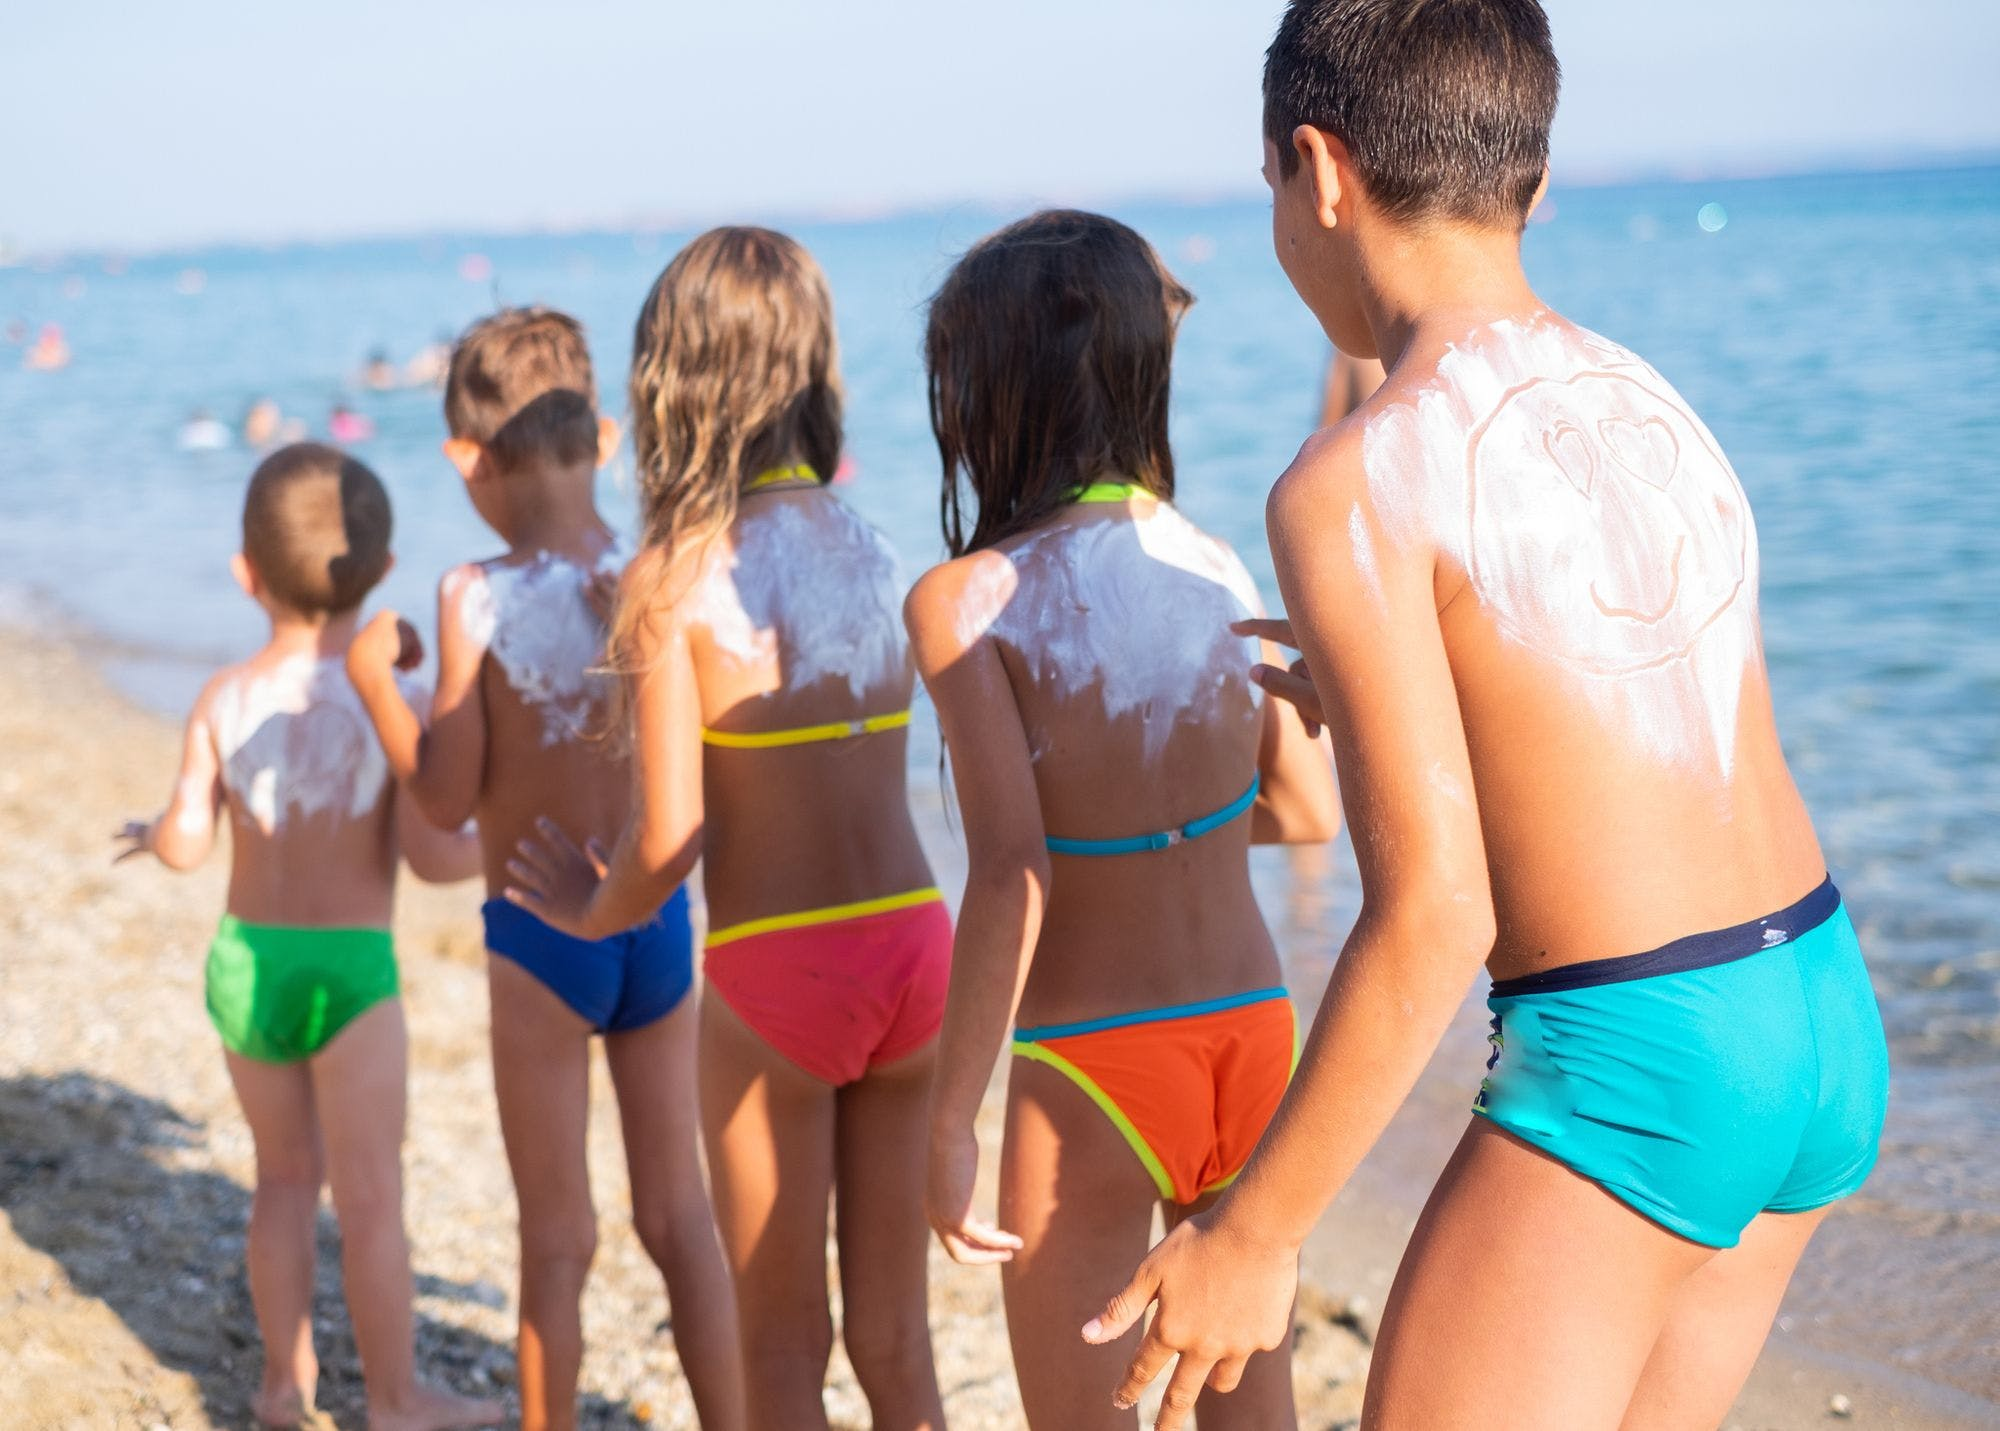 A line of five children at the beach putting sunscreen on one another.